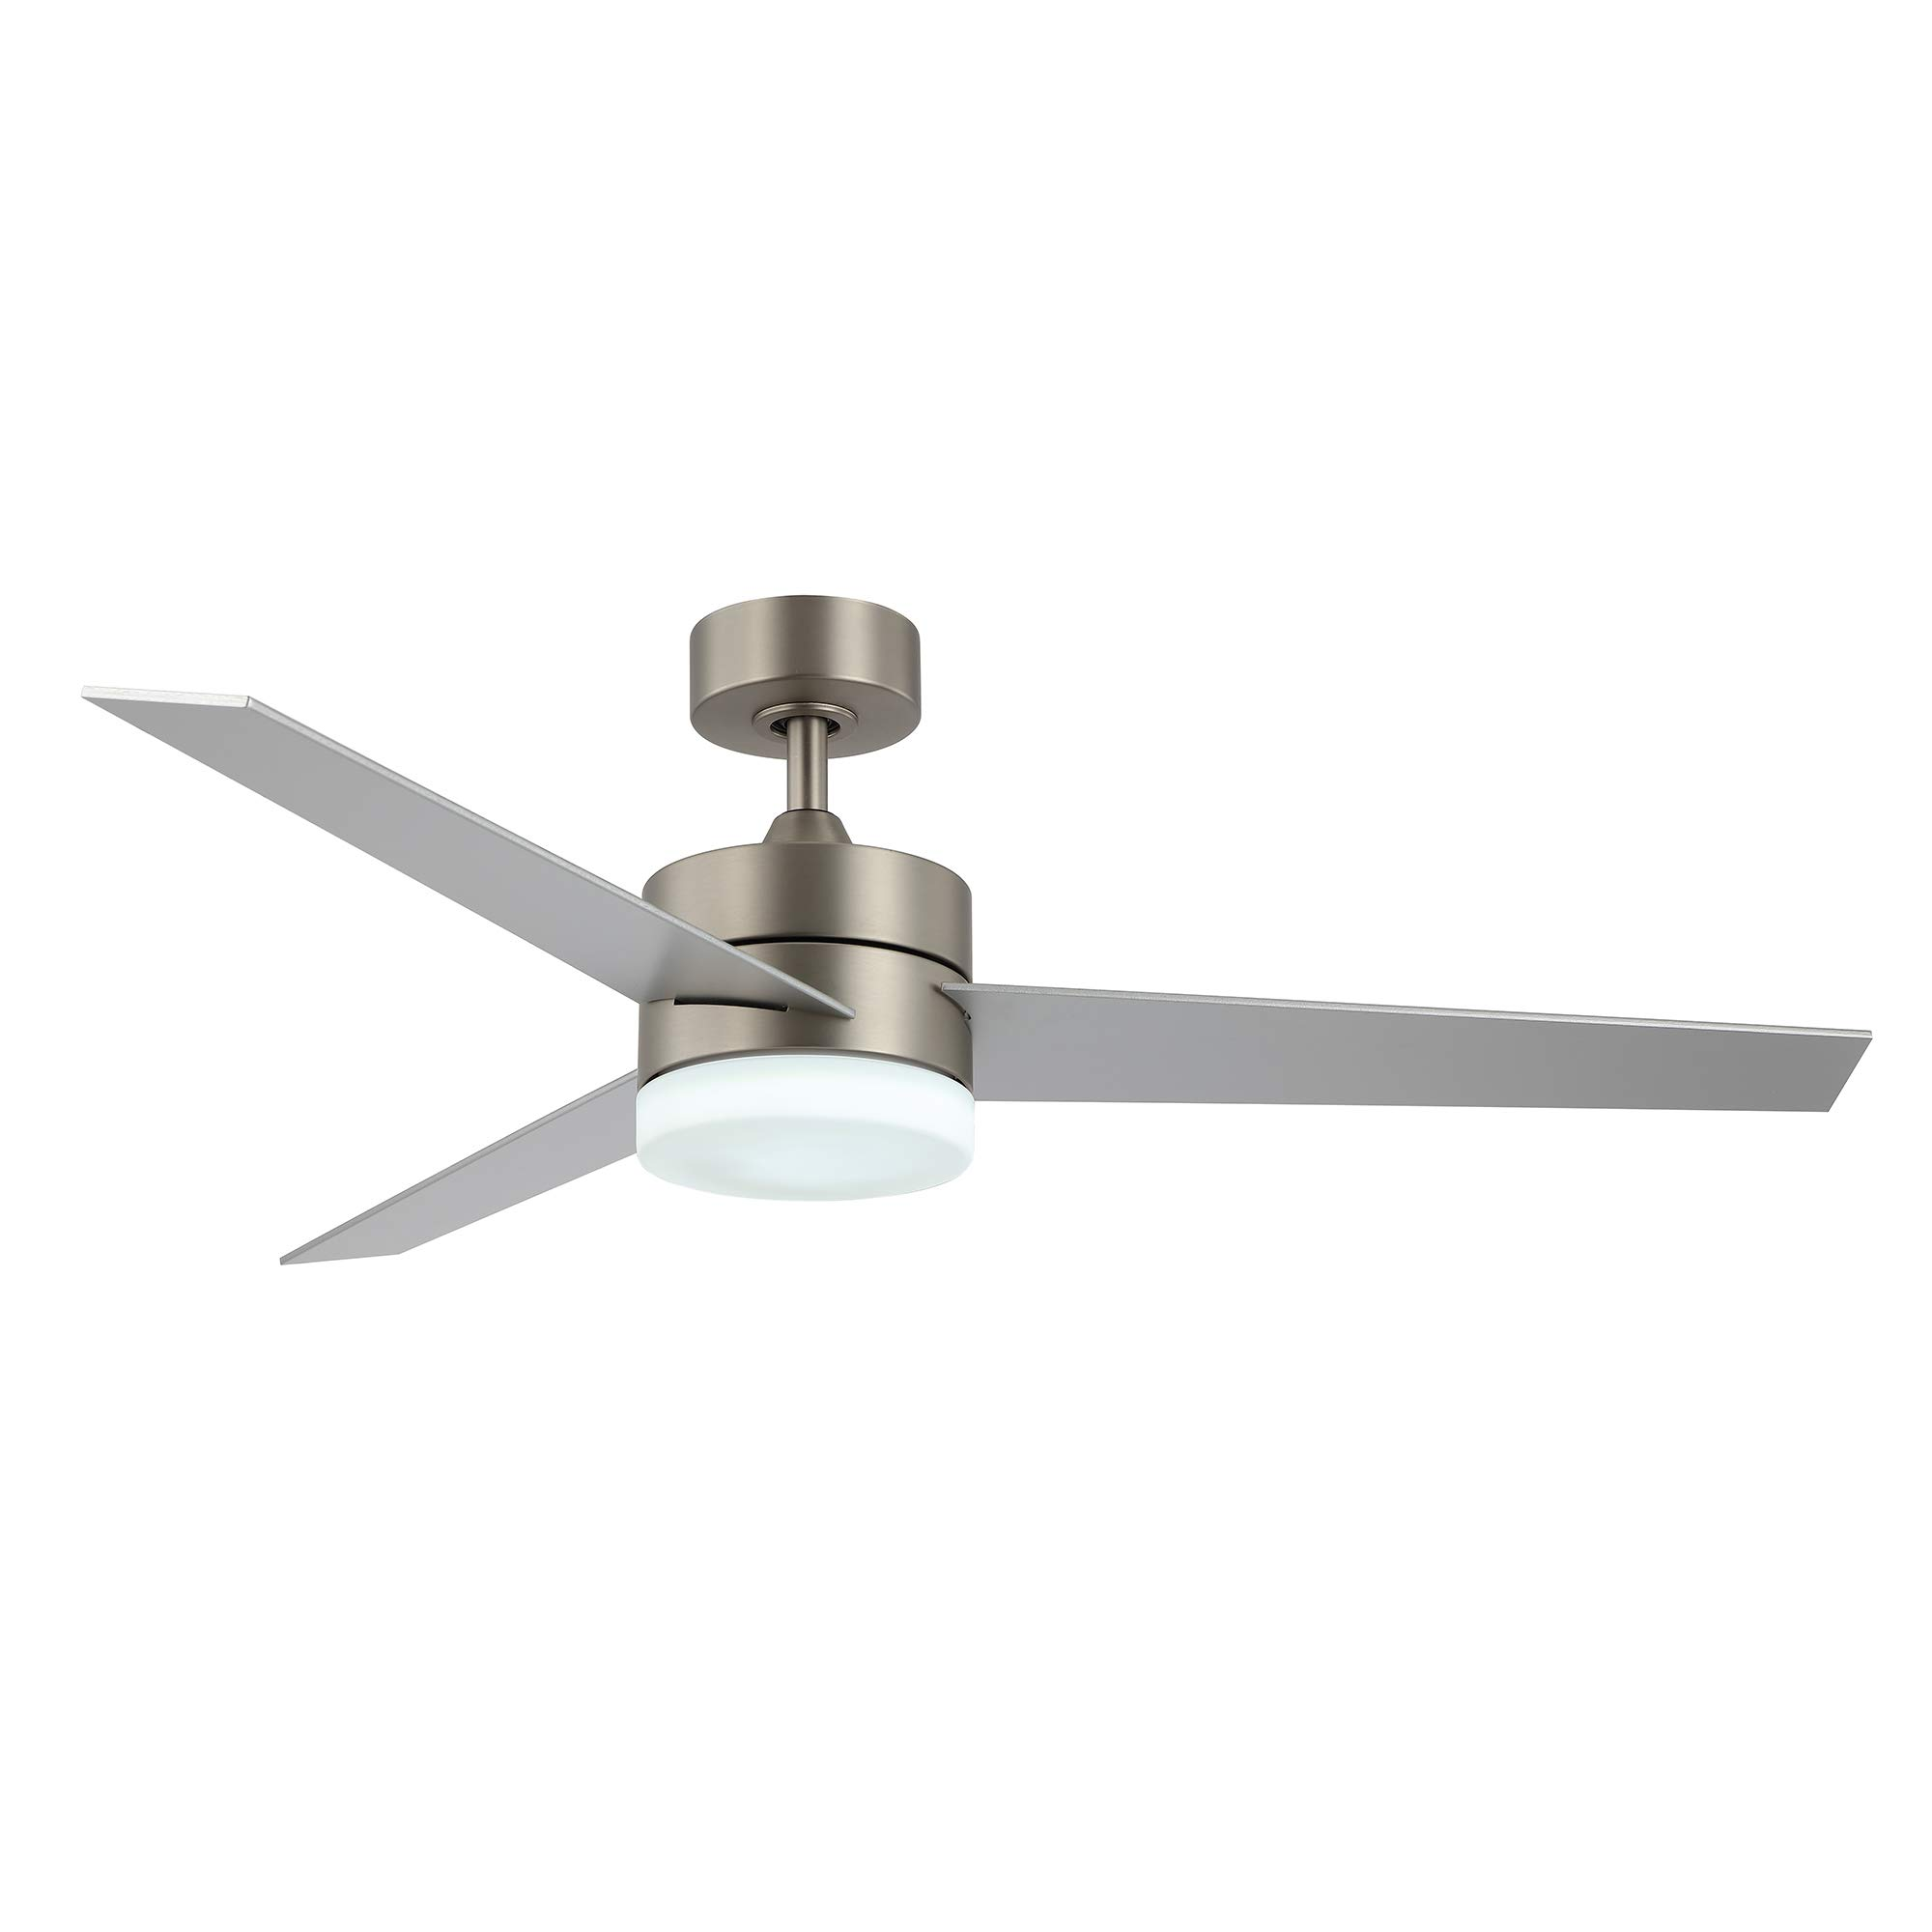 Amazon Com Wingbo 52 Modern Ceiling Fan With Lights And Remote Control Contemporary Ceiling Fan Brushed Nickel 3 Reversible Blades Indoor Led Ceiling Fan For Kitchen Bedroom Living Room Etl Listed Kitchen